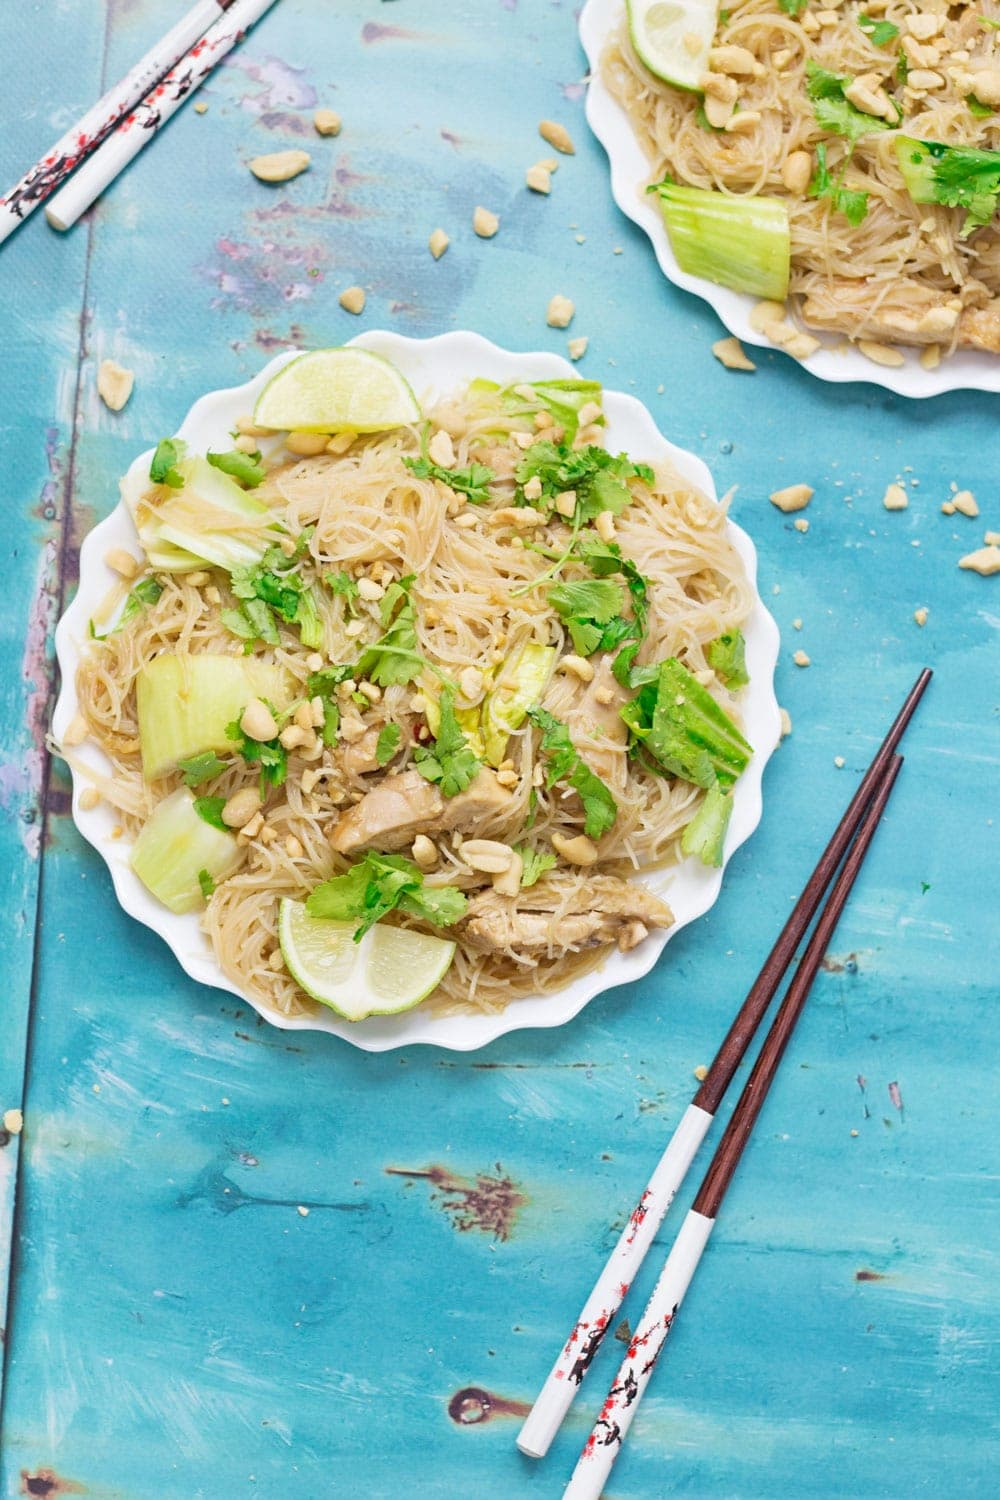 Overhead shot of white plate of chicken noodles on a blue background